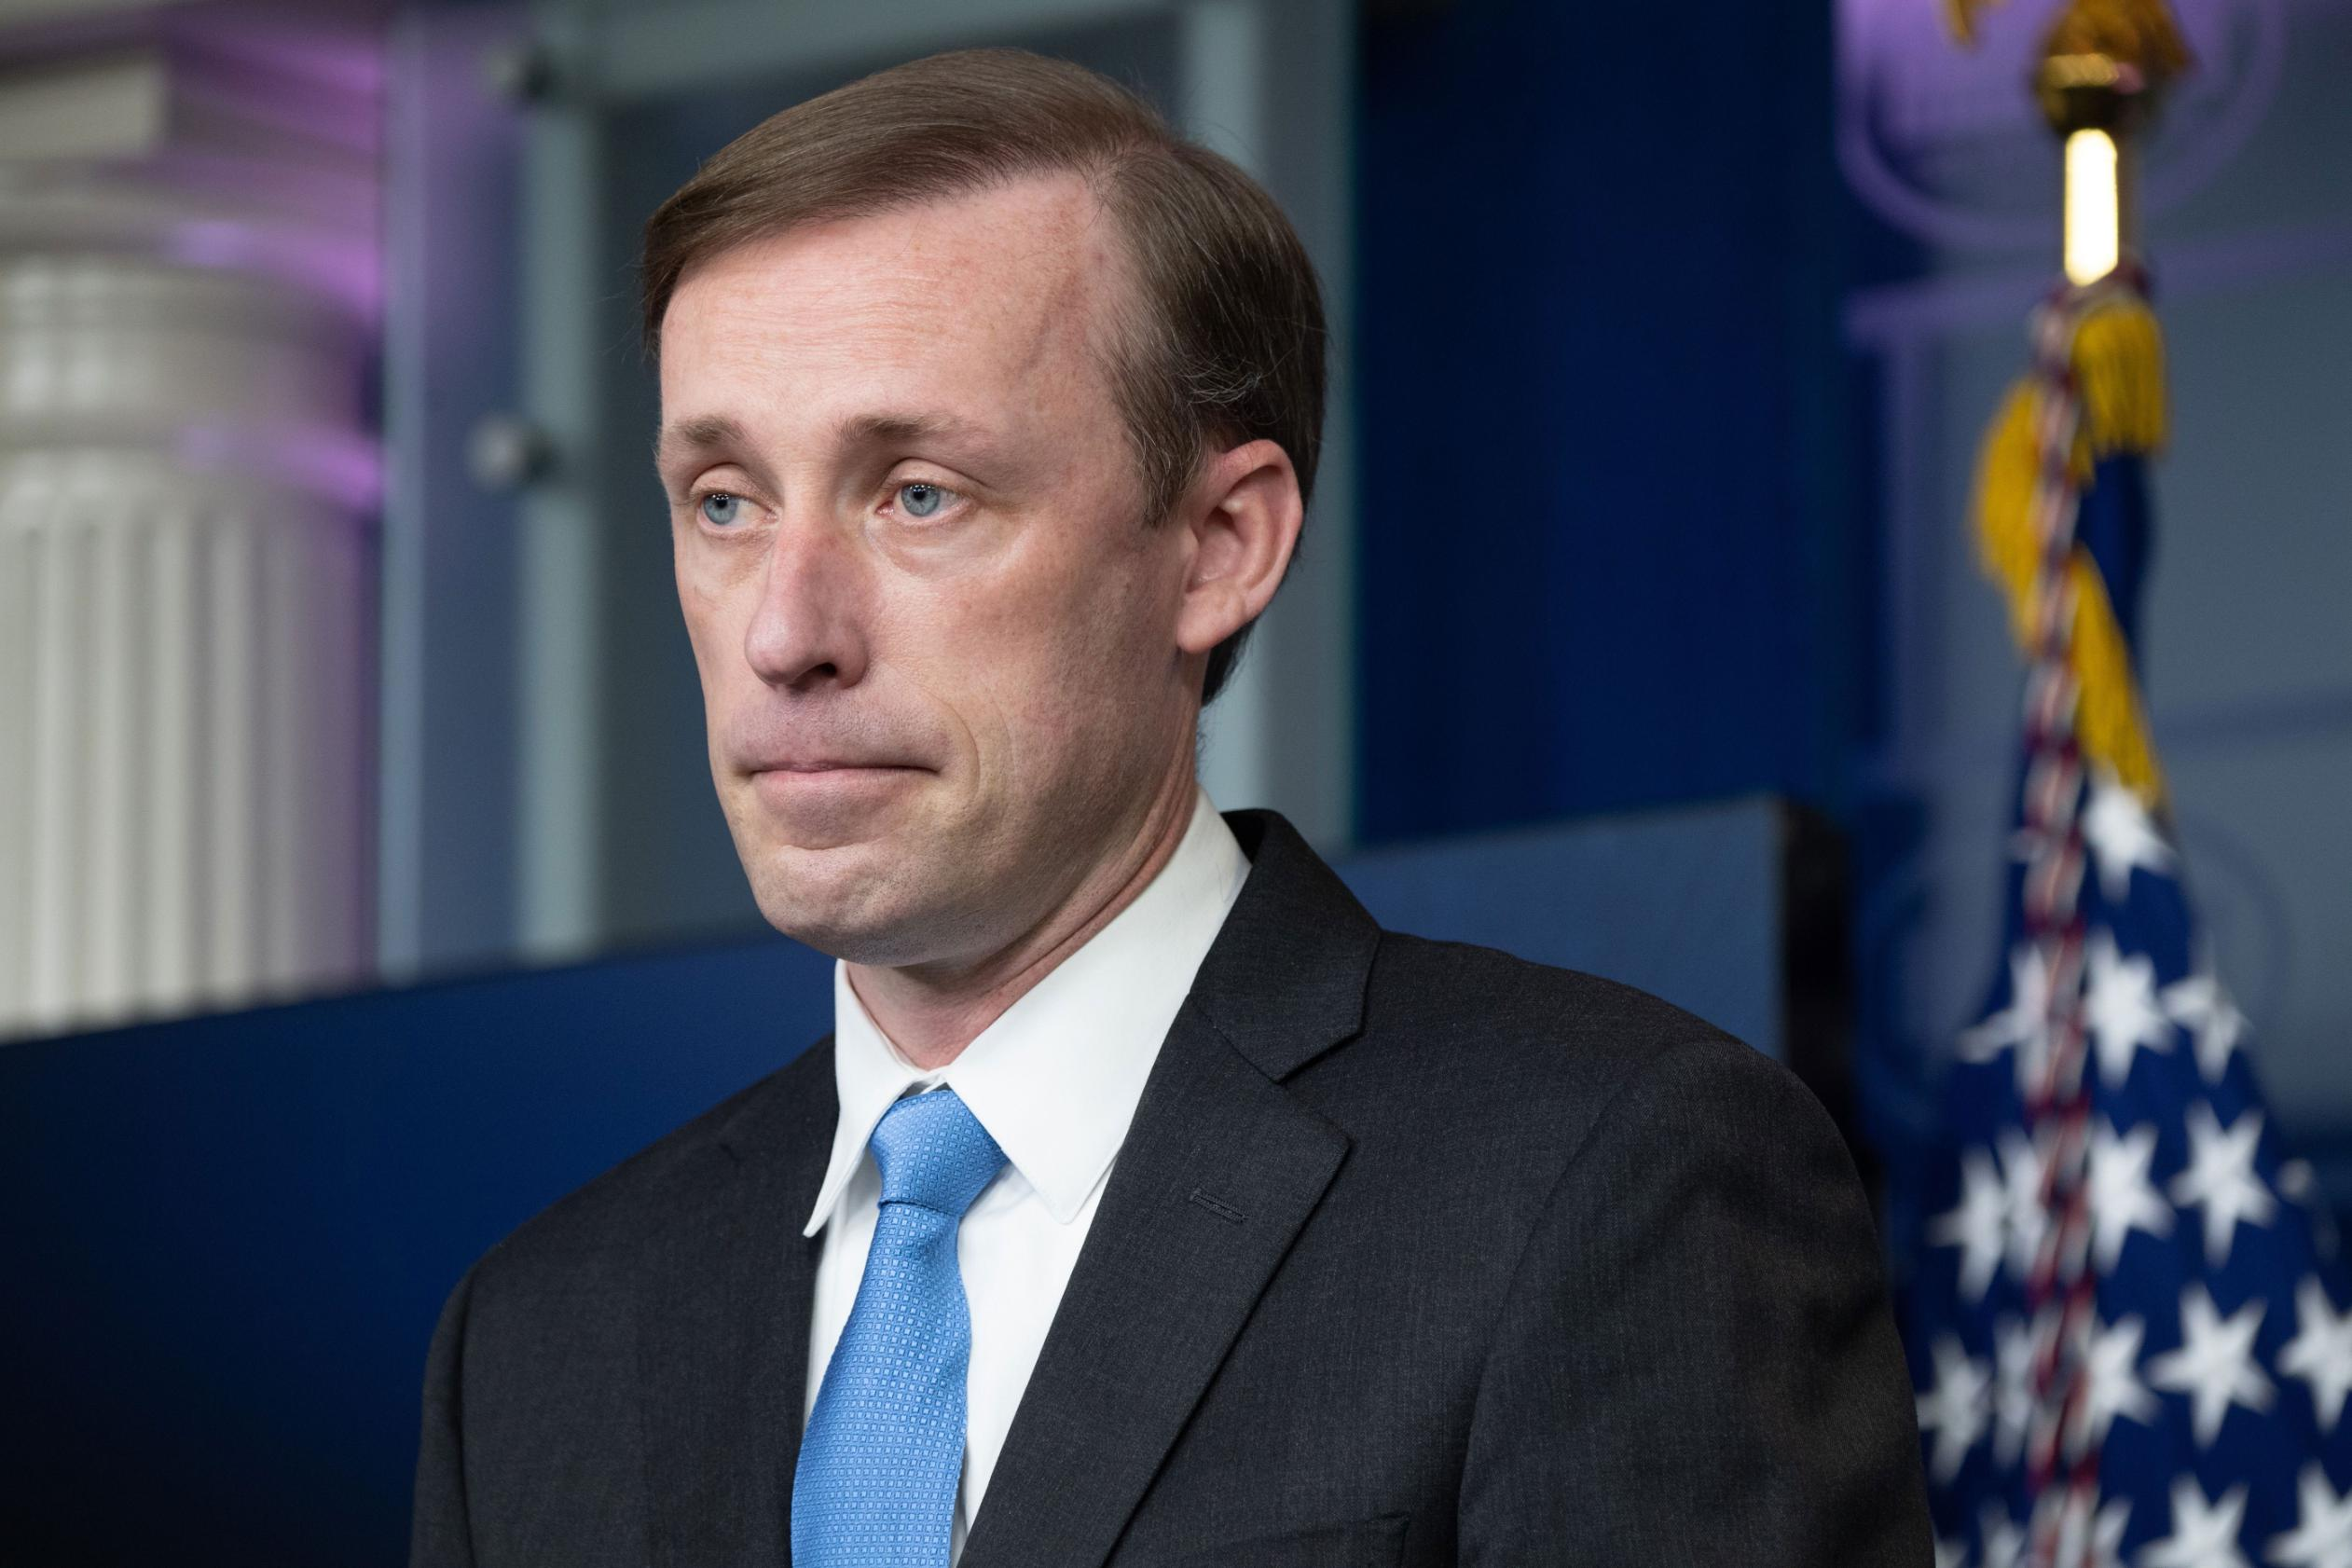 National security adviser: US preparing more Russia sanctions over Navalny poisoning and imprisonment